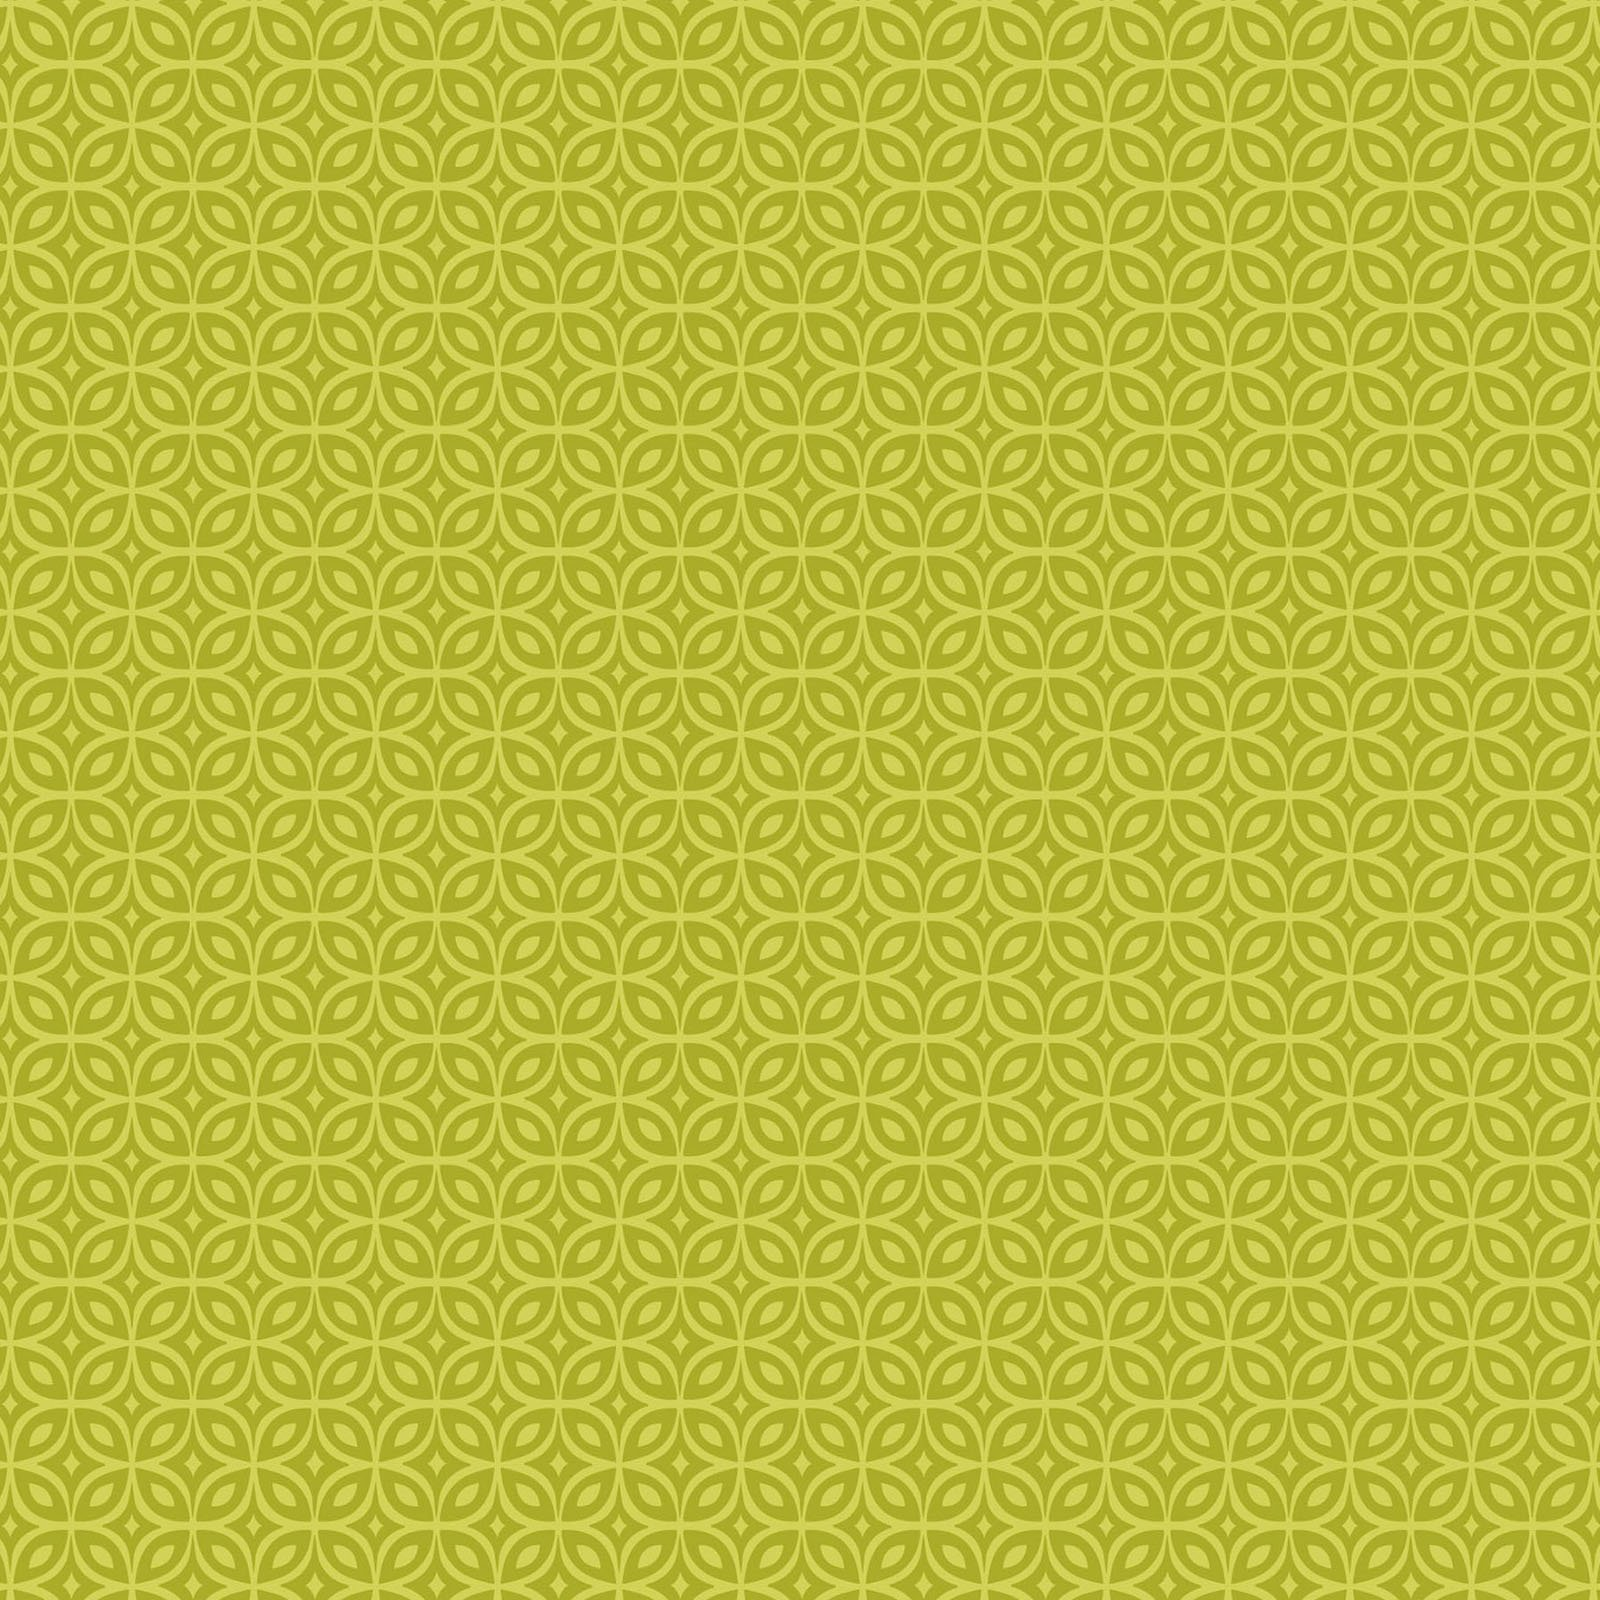 WHIM-4413 A - WHIMSY BY HANG TIGHT STUDIO OPTIC APPLE GREEN